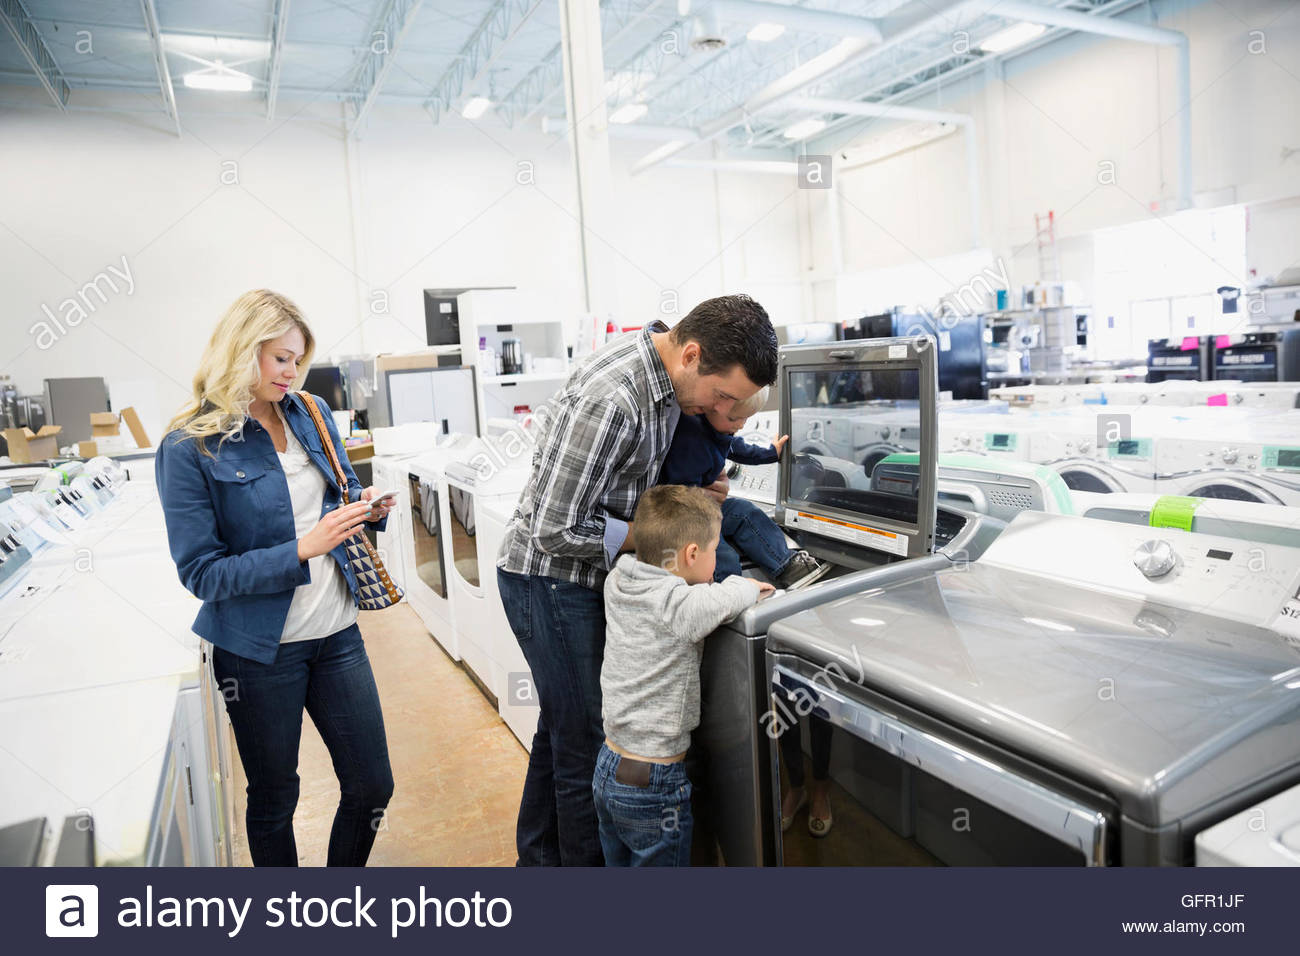 Young family shopping for clothes washer in appliance store - Stock Image